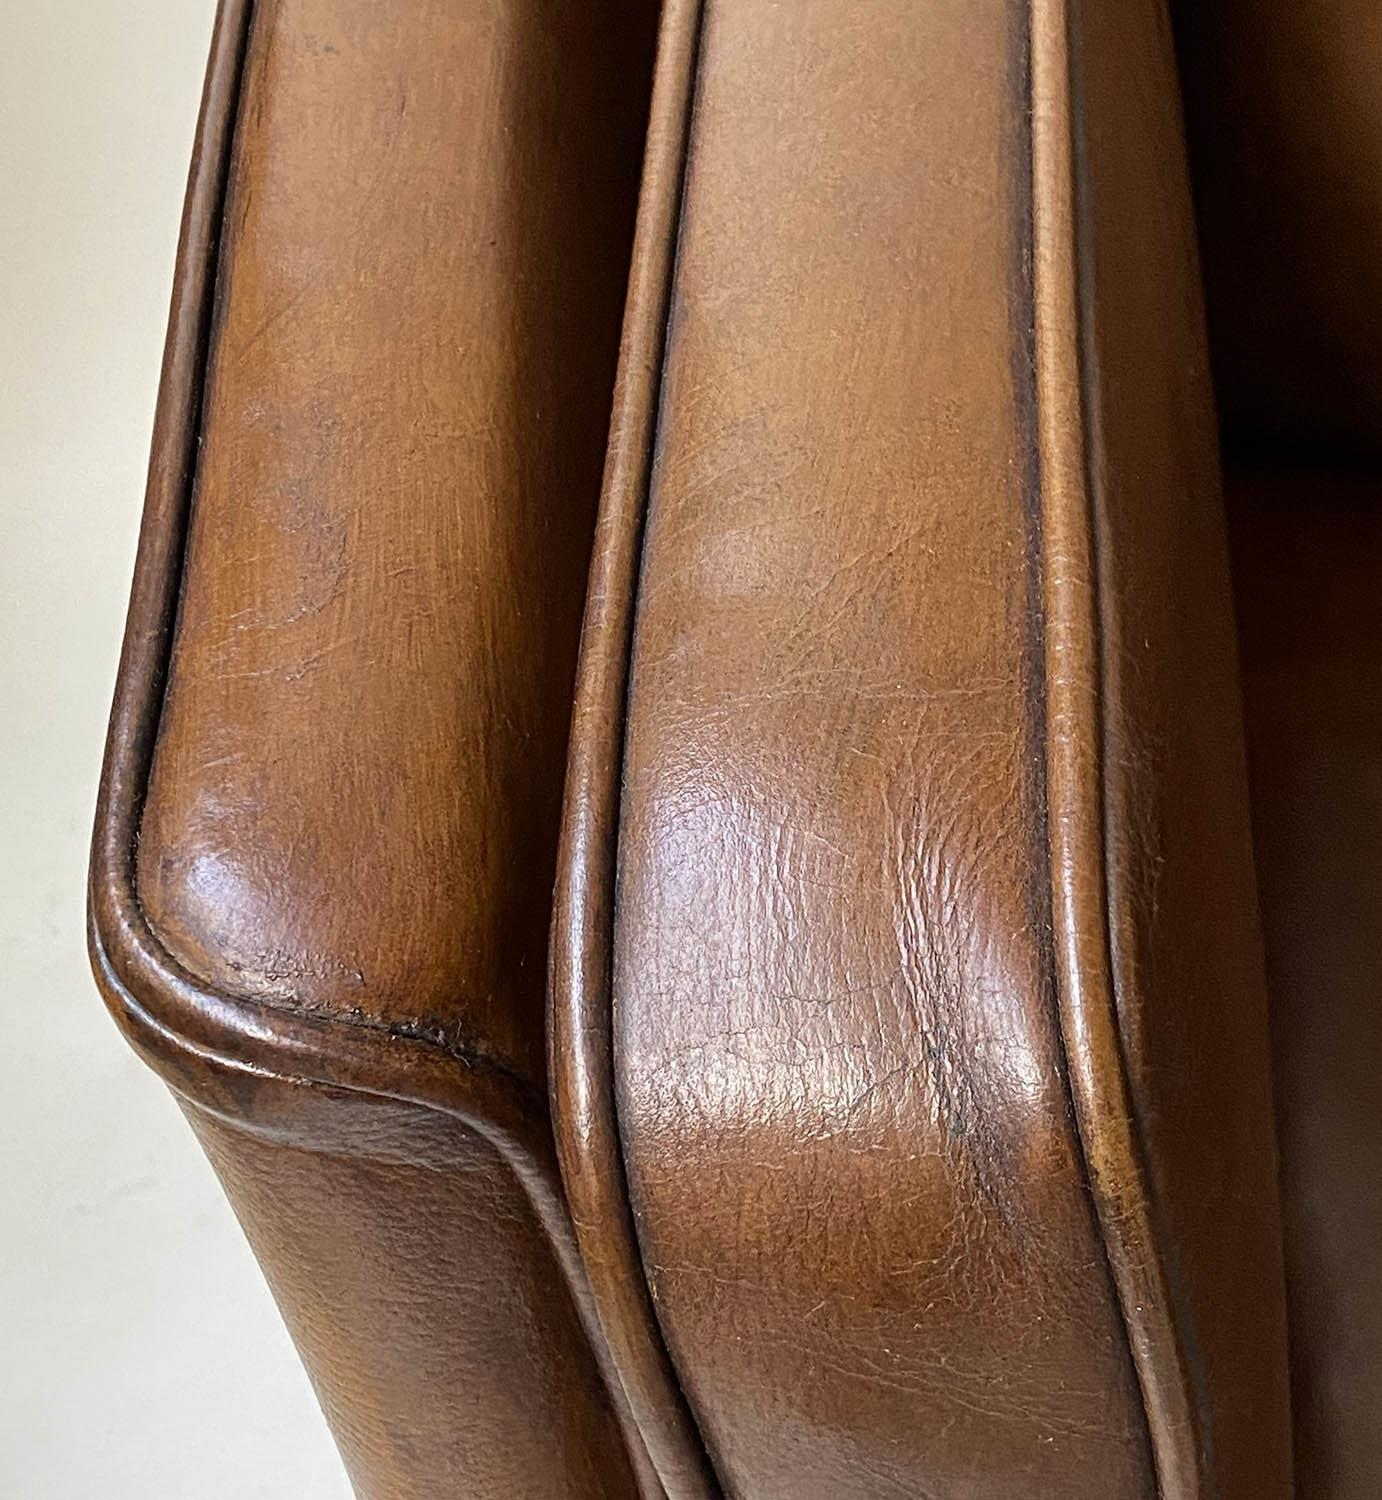 SOFA, teak, 1970's Danish style grained tan leather with two cushion seat and back, 150cm W. - Image 2 of 5